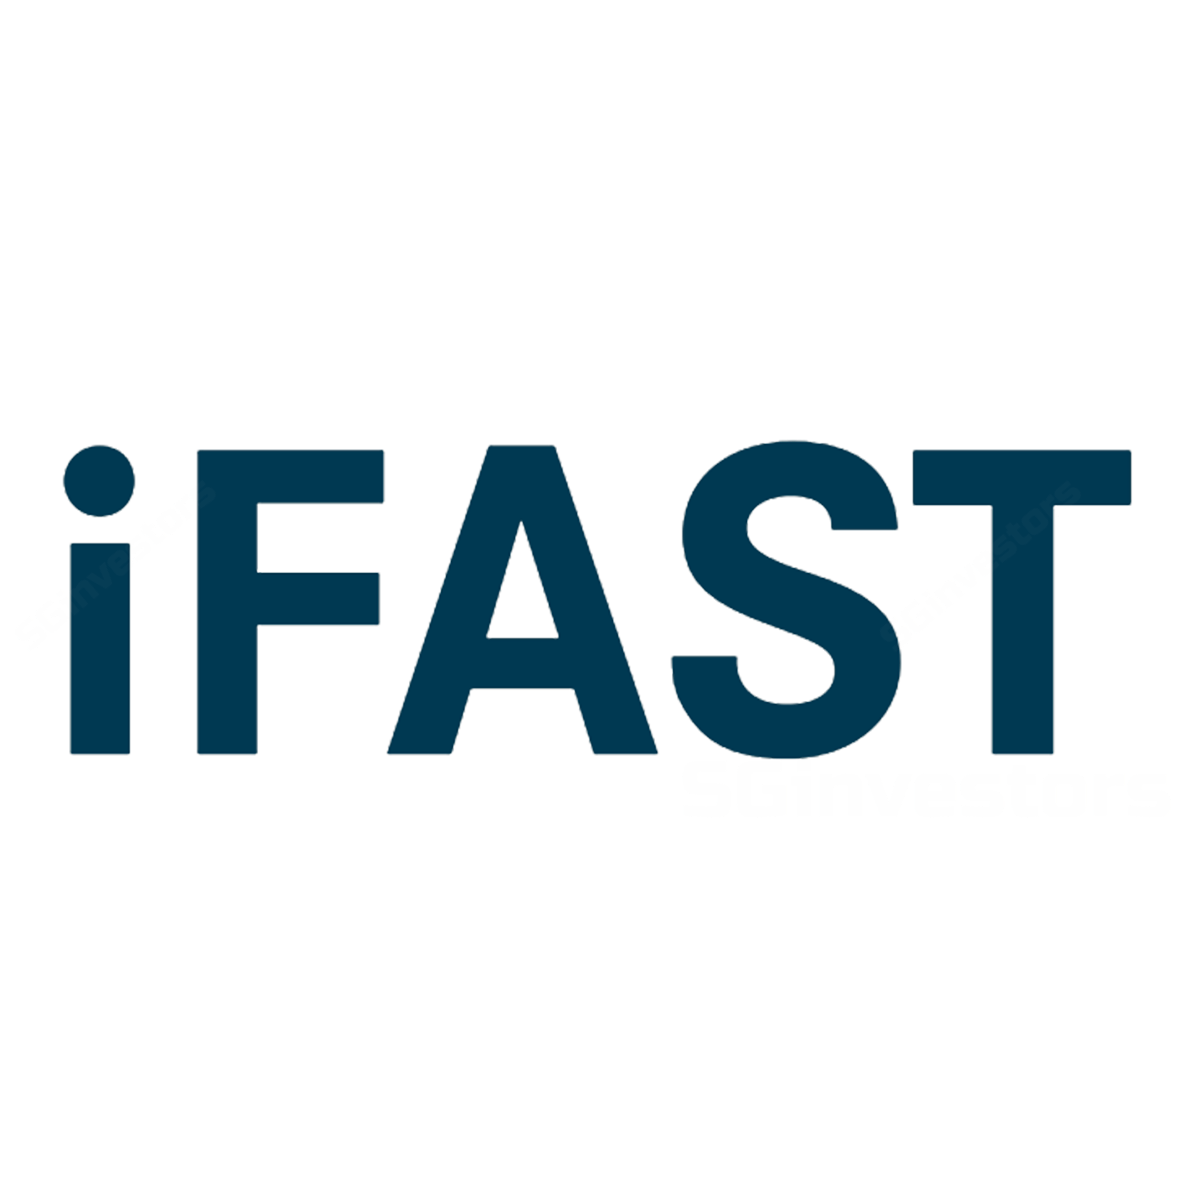 IFAST Corporation - DBS Vickers 2017-10-30: Focus On Gaining Scale